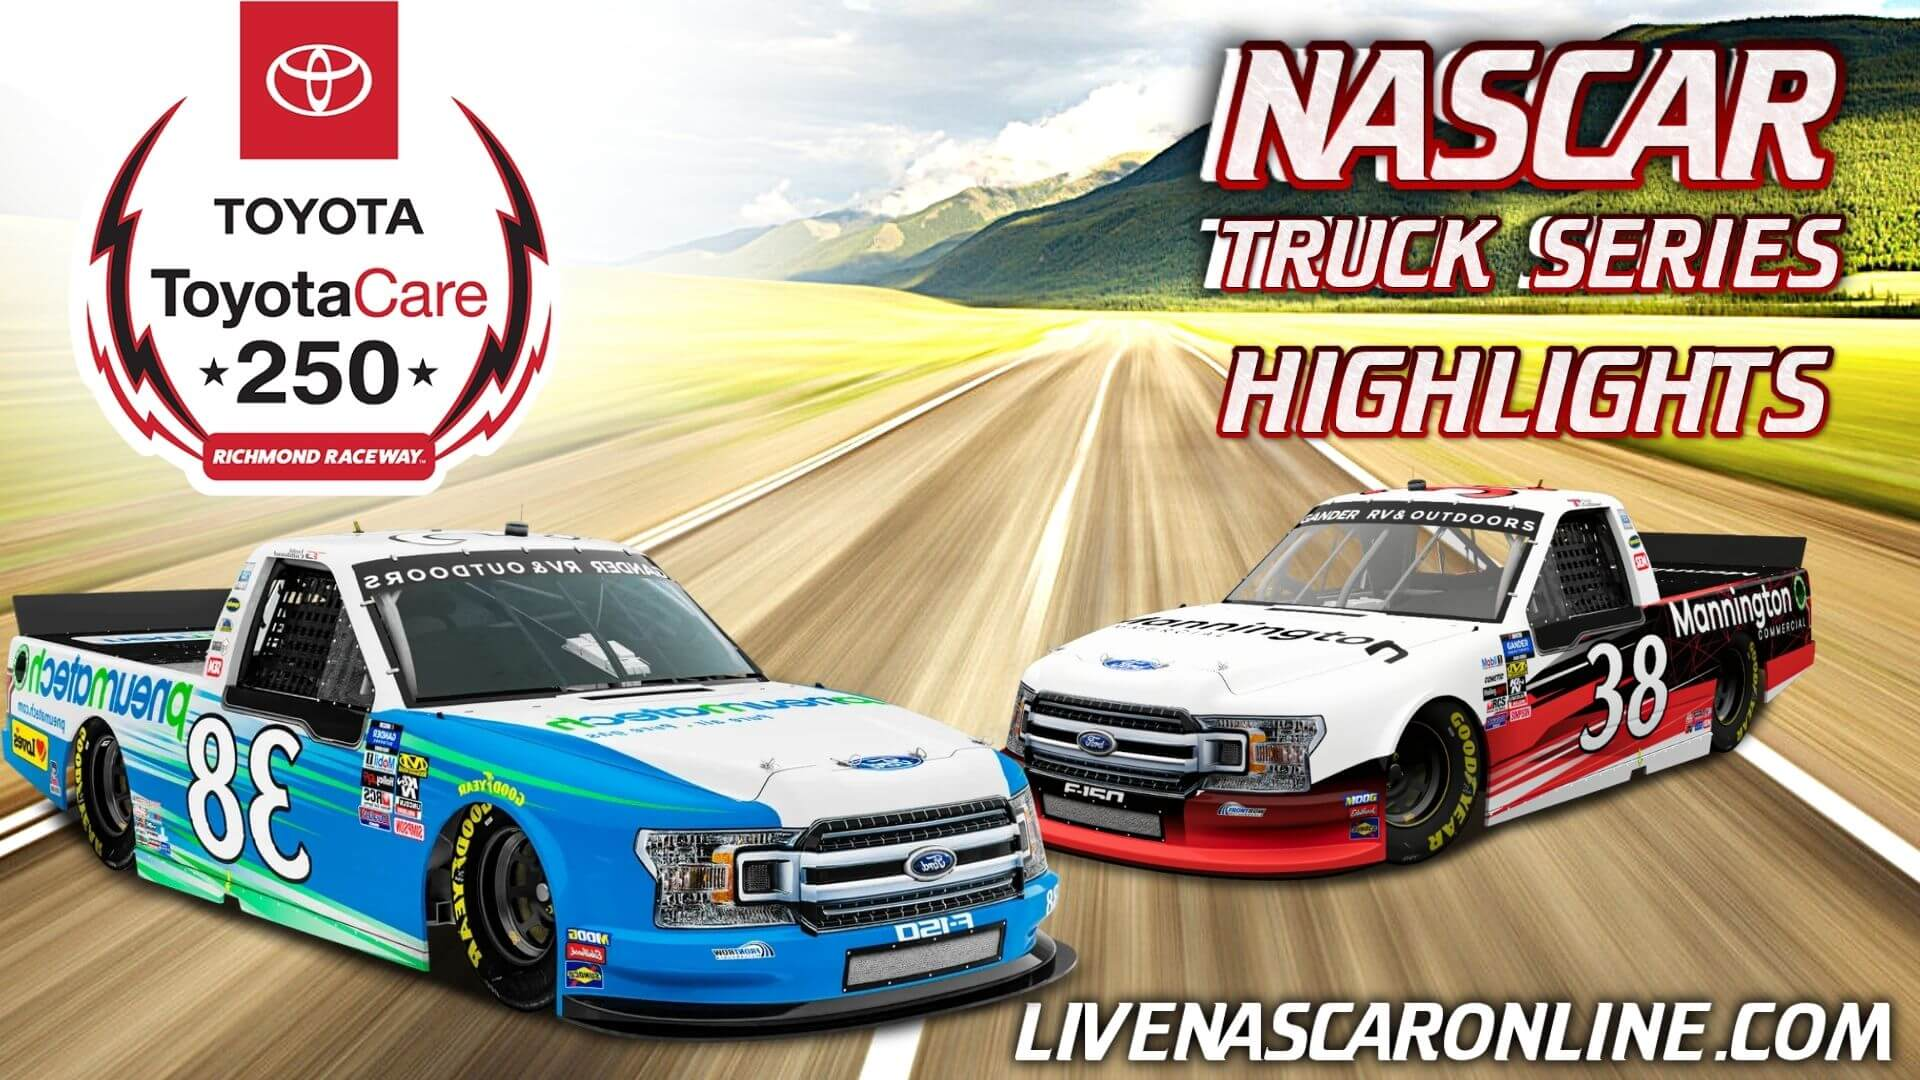 ToyotaCare 250 Highlights 2021 Nascar Truck Series